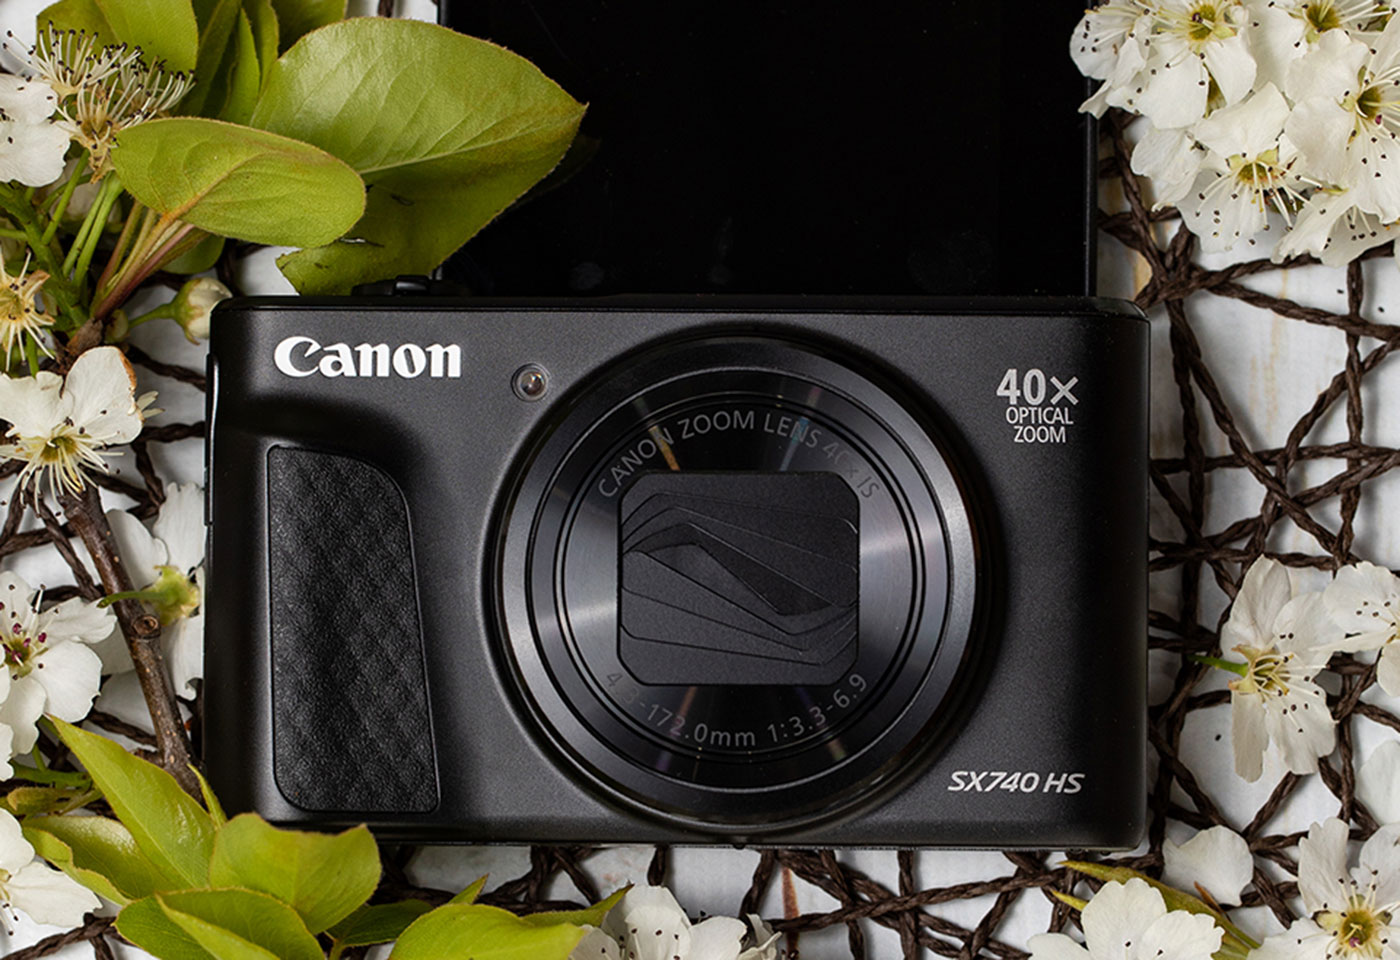 Canon camera product and flat lay image